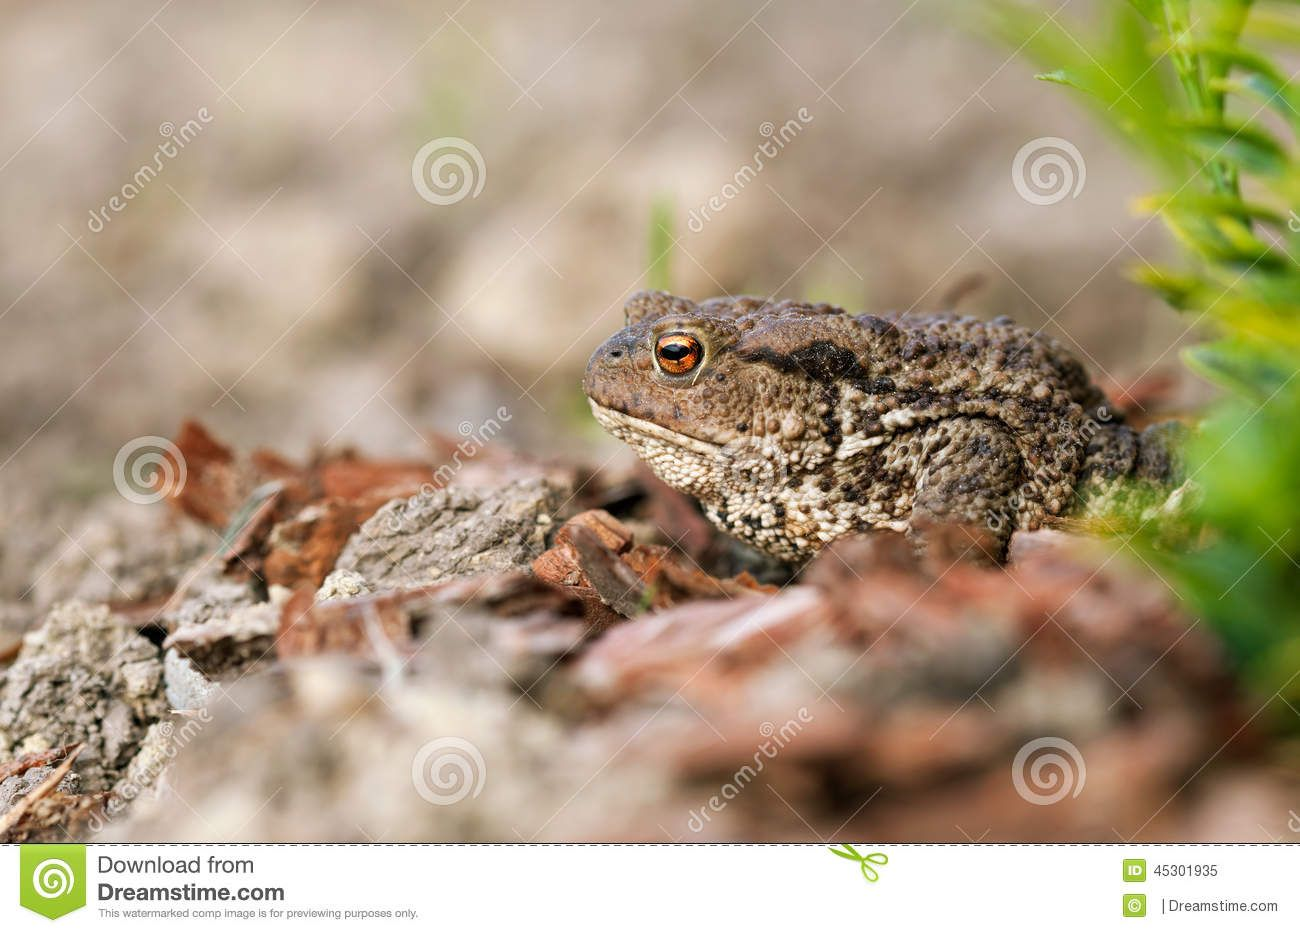 Frog Download From Over 26 Million High Quality Stock